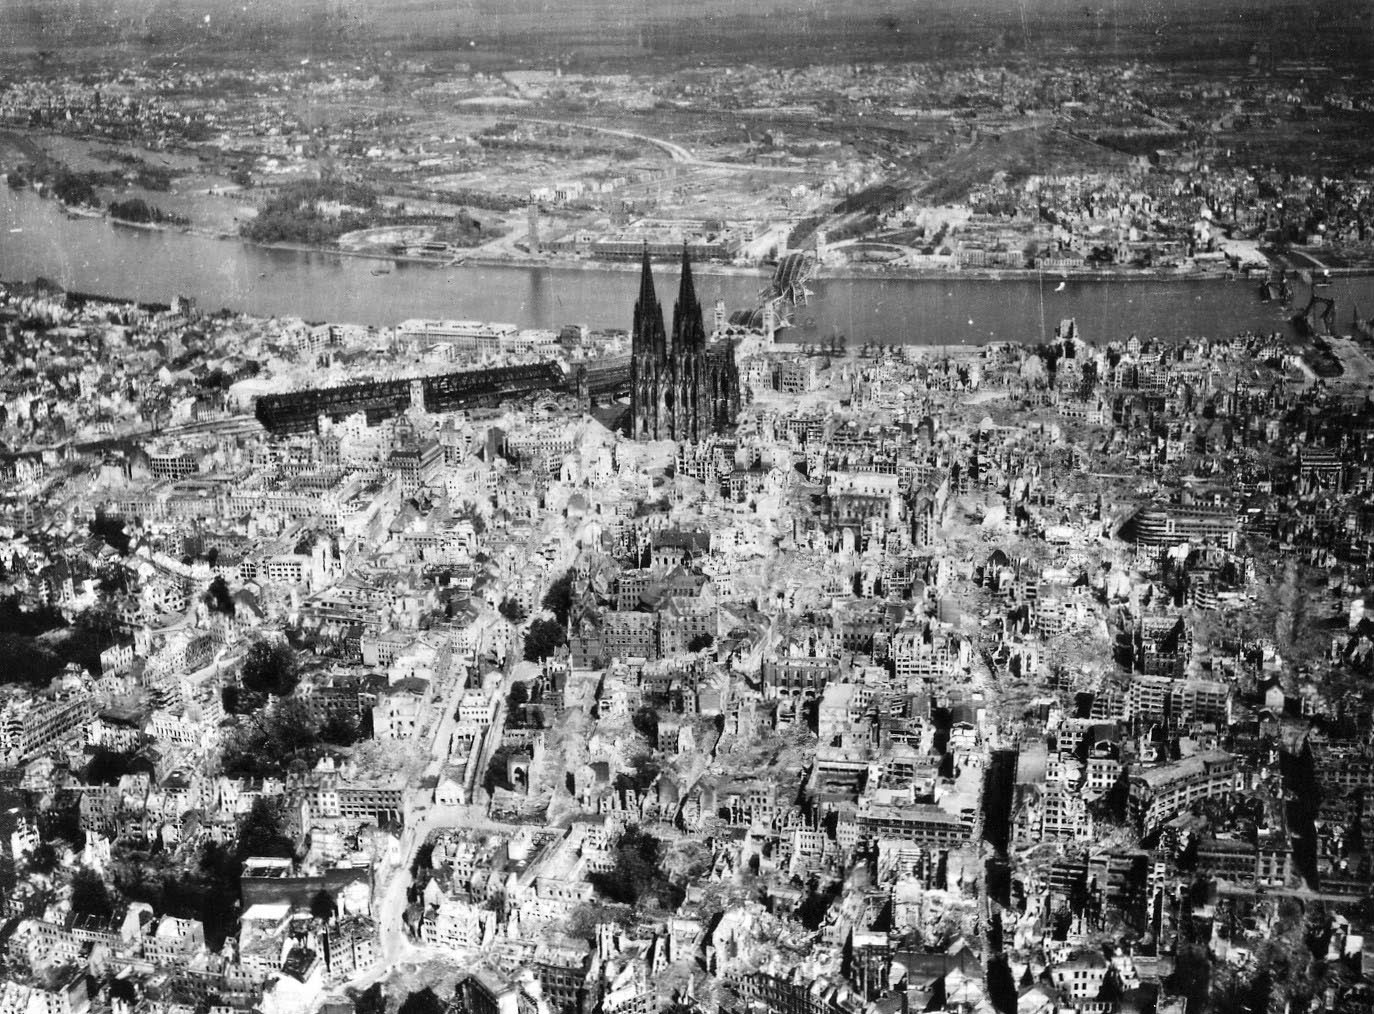 The city of Cologne (Köln) was entirely bombed.